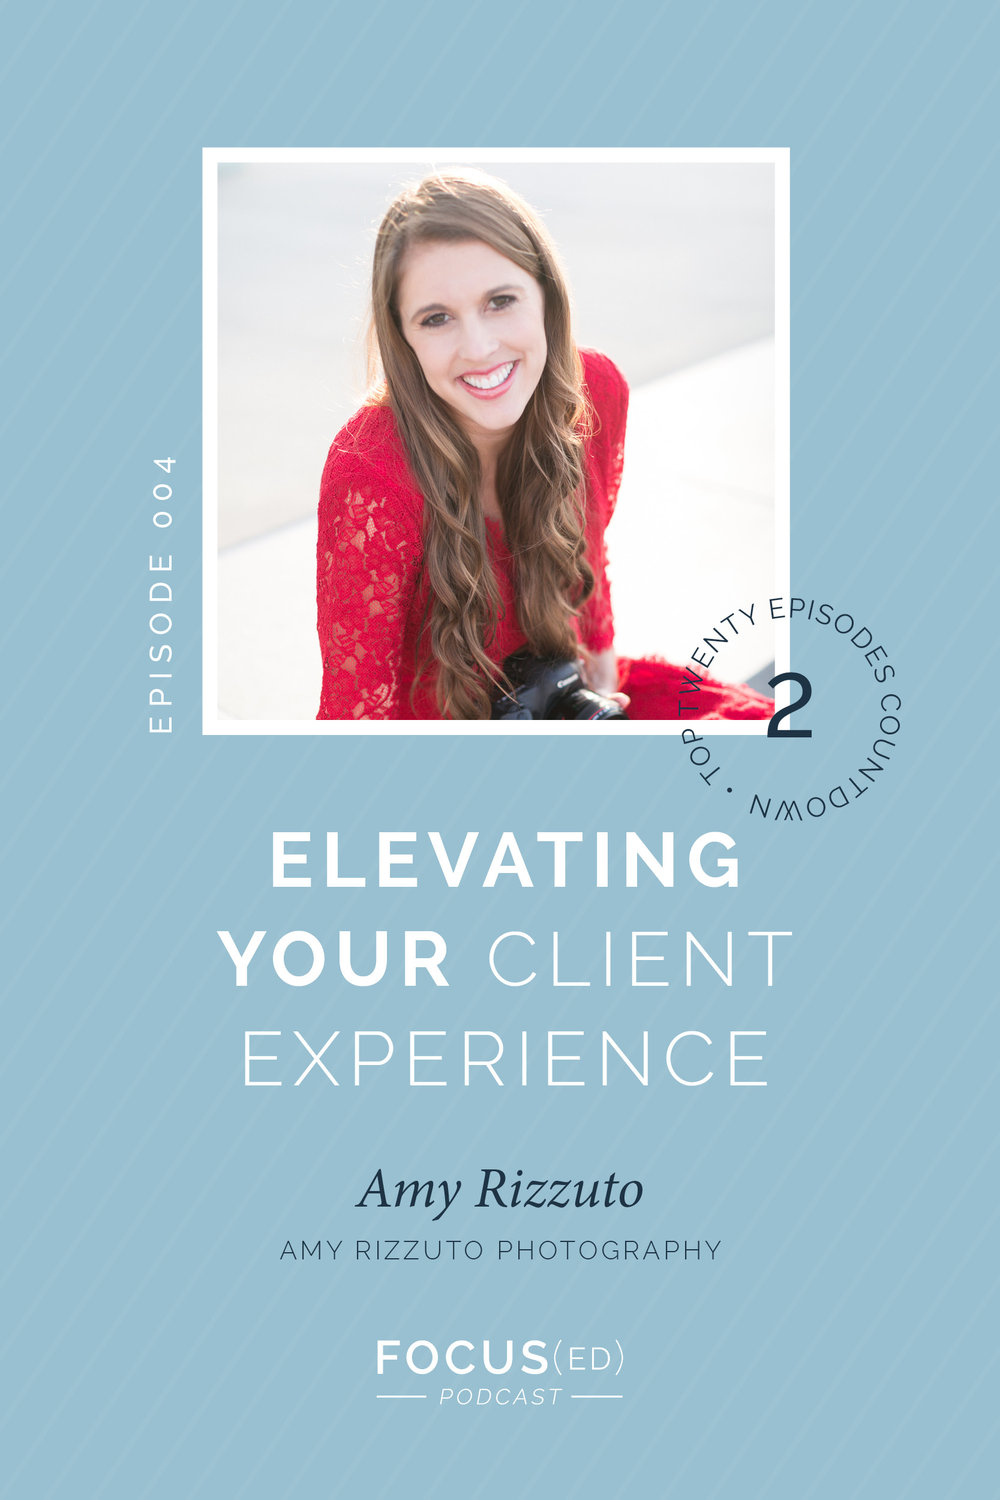 elevating your client experience on Focused Podcast